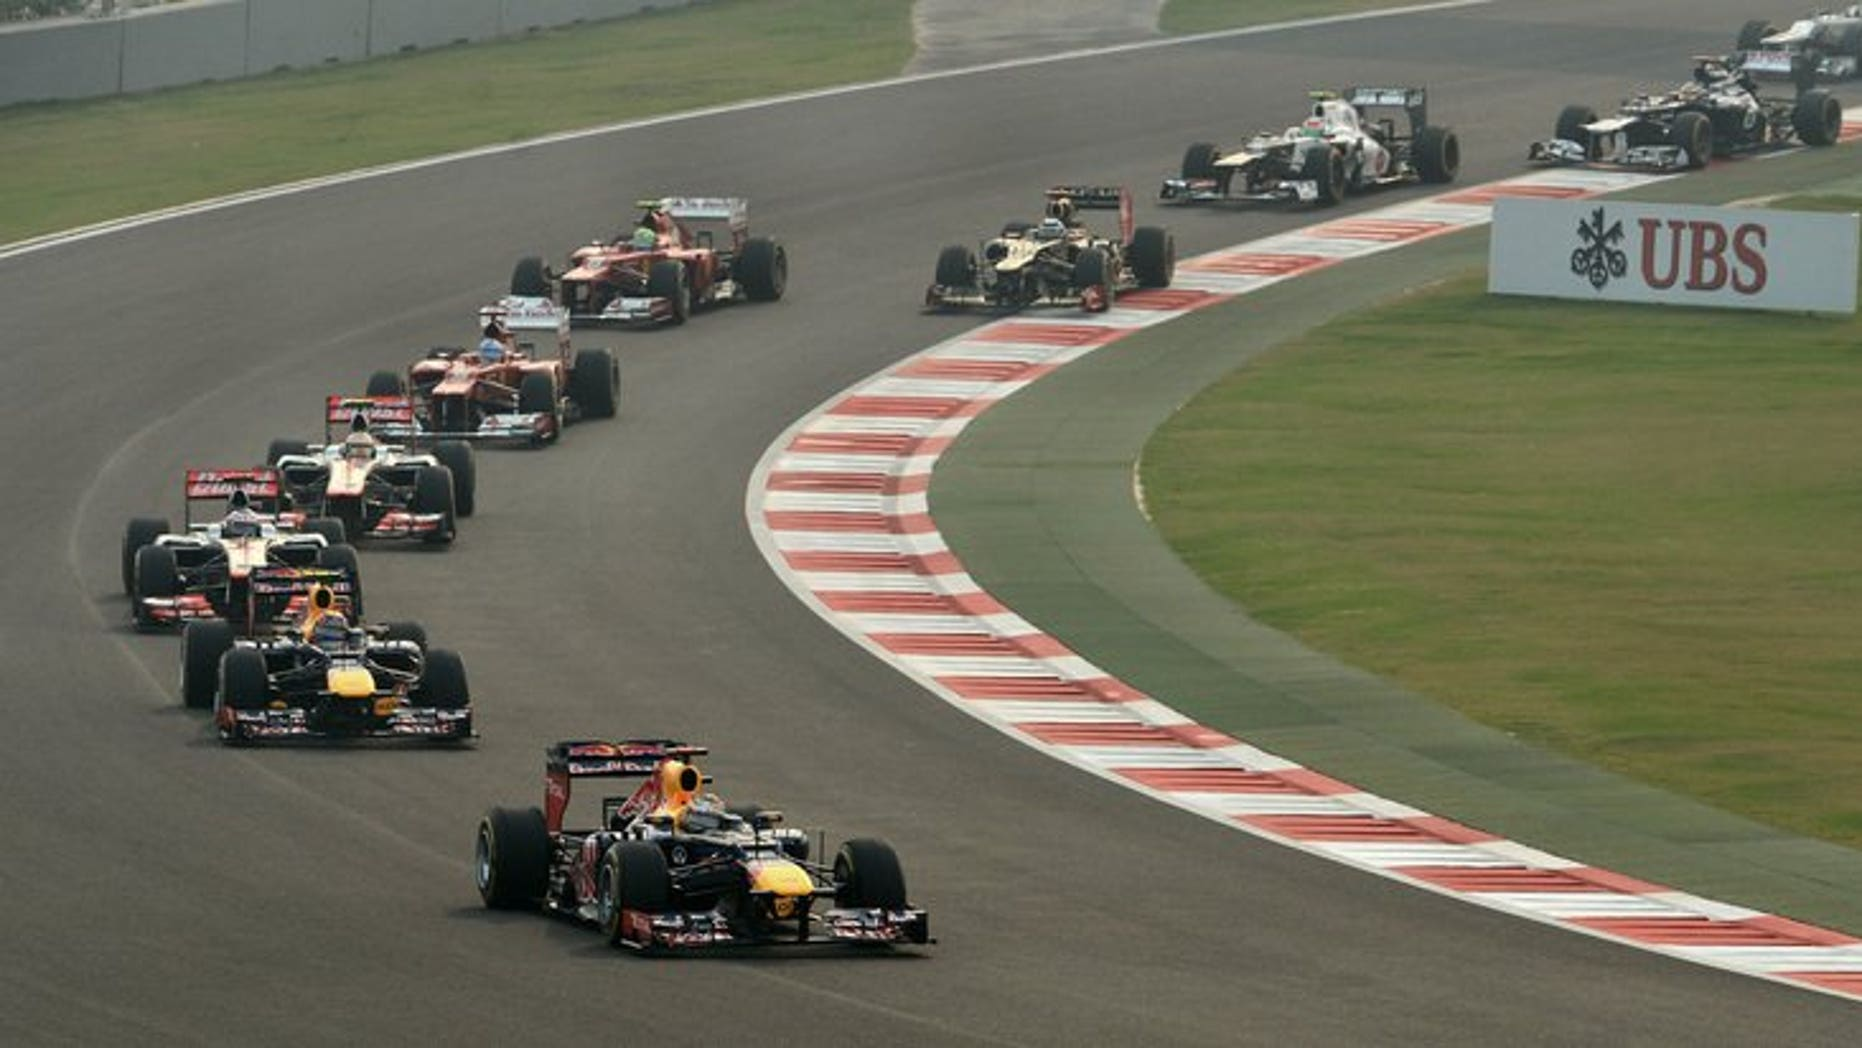 Drivers take part in the Formula One Indian Grand Prix, in New Delhi on October 28, 2012. The Indian Grand Prix has been cancelled for next year but is expected to return in 2015, an official said on Wednesday.